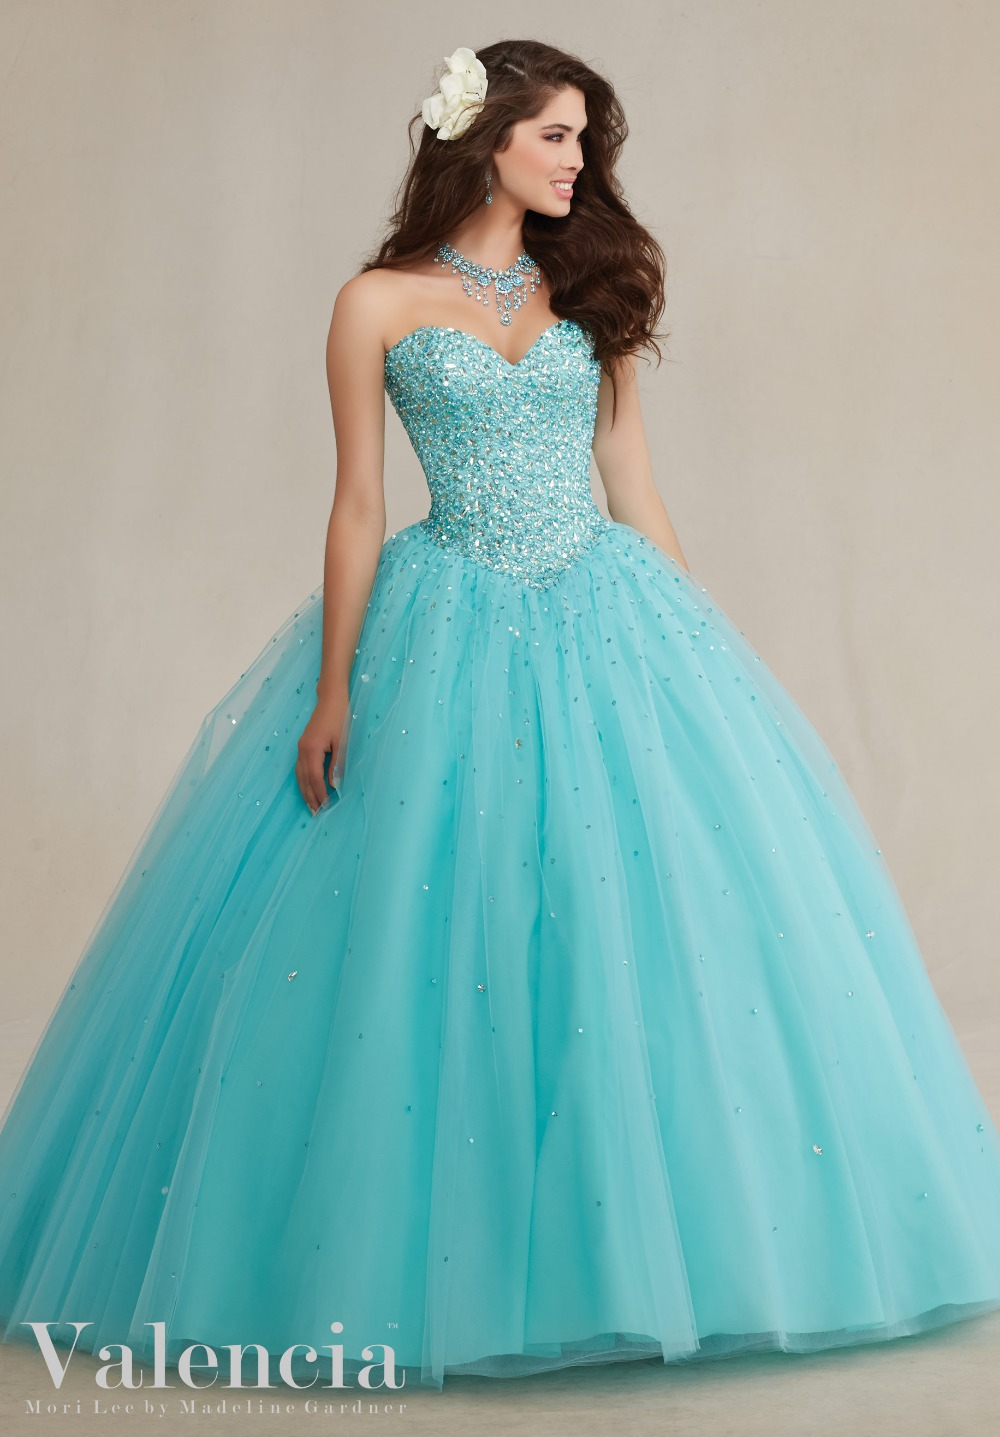 deb19c3c813 2017 New Fashion Pink Mint blue Sweetheart Custom Made Quinceanera Ball Gown  Vestido De Debutantes e 15 Anos-in Quinceanera Dresses from Weddings    Events